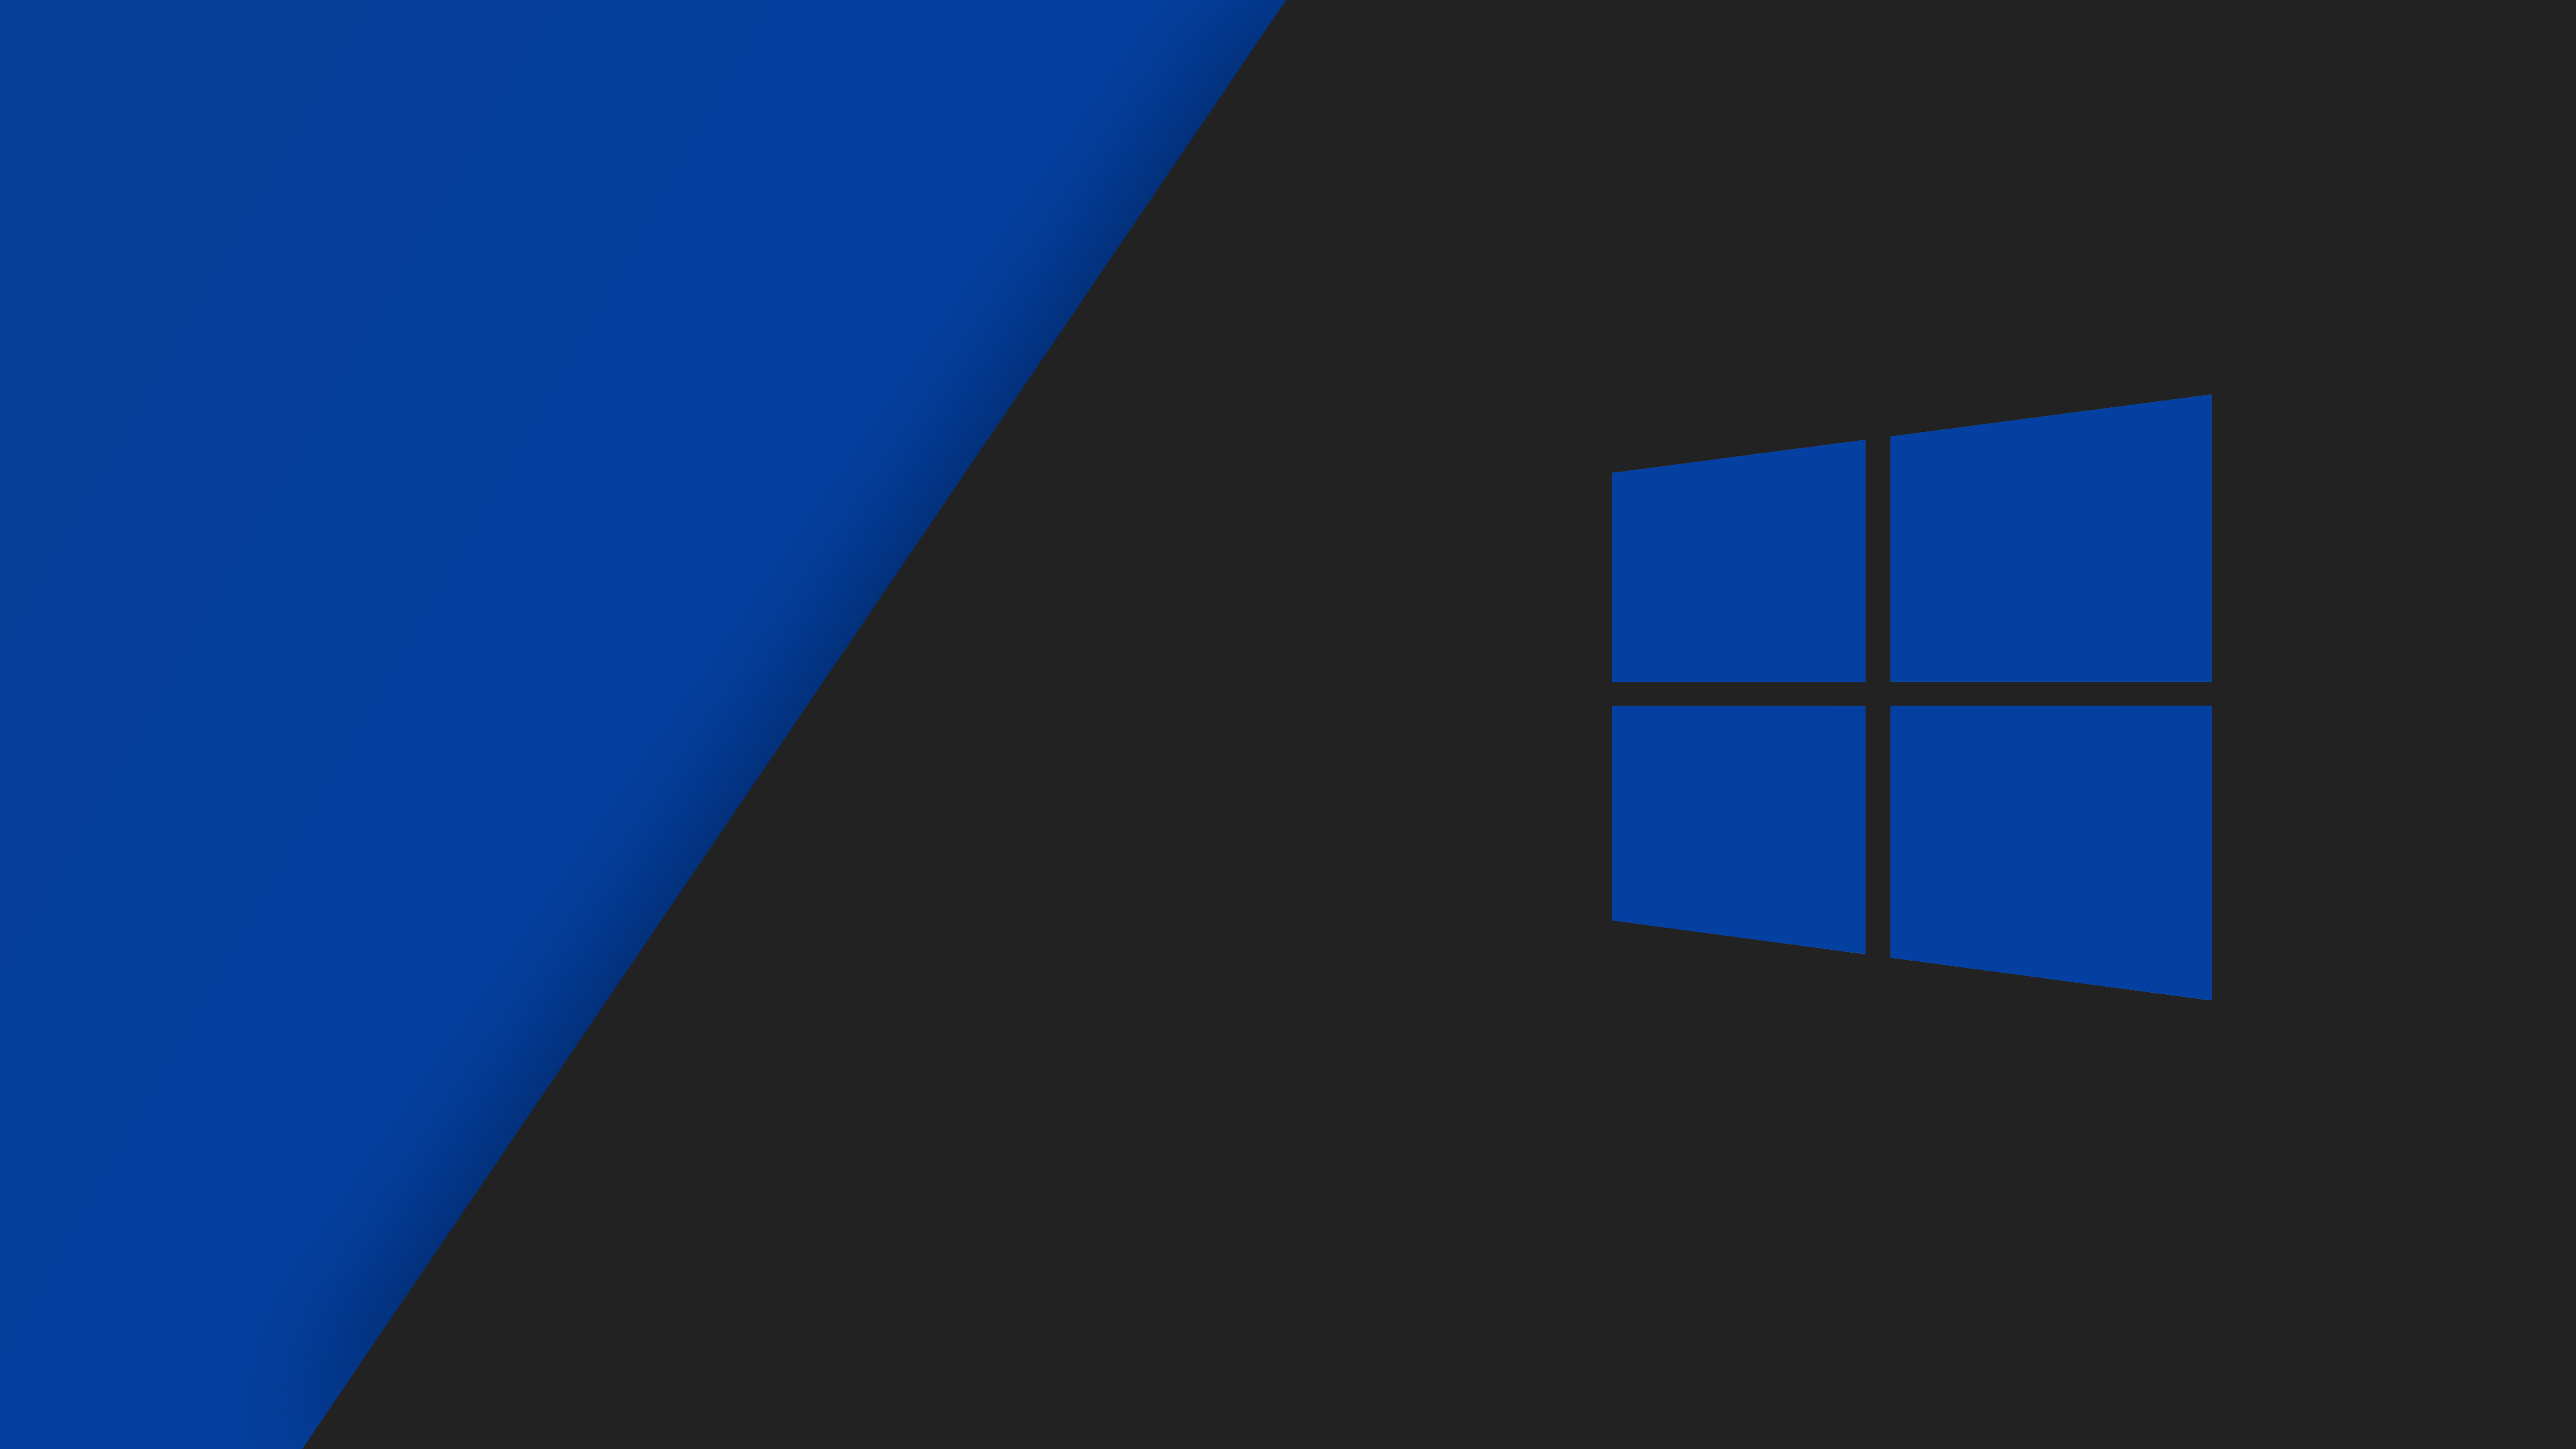 4k windows 10 wallpapers high quality   download free